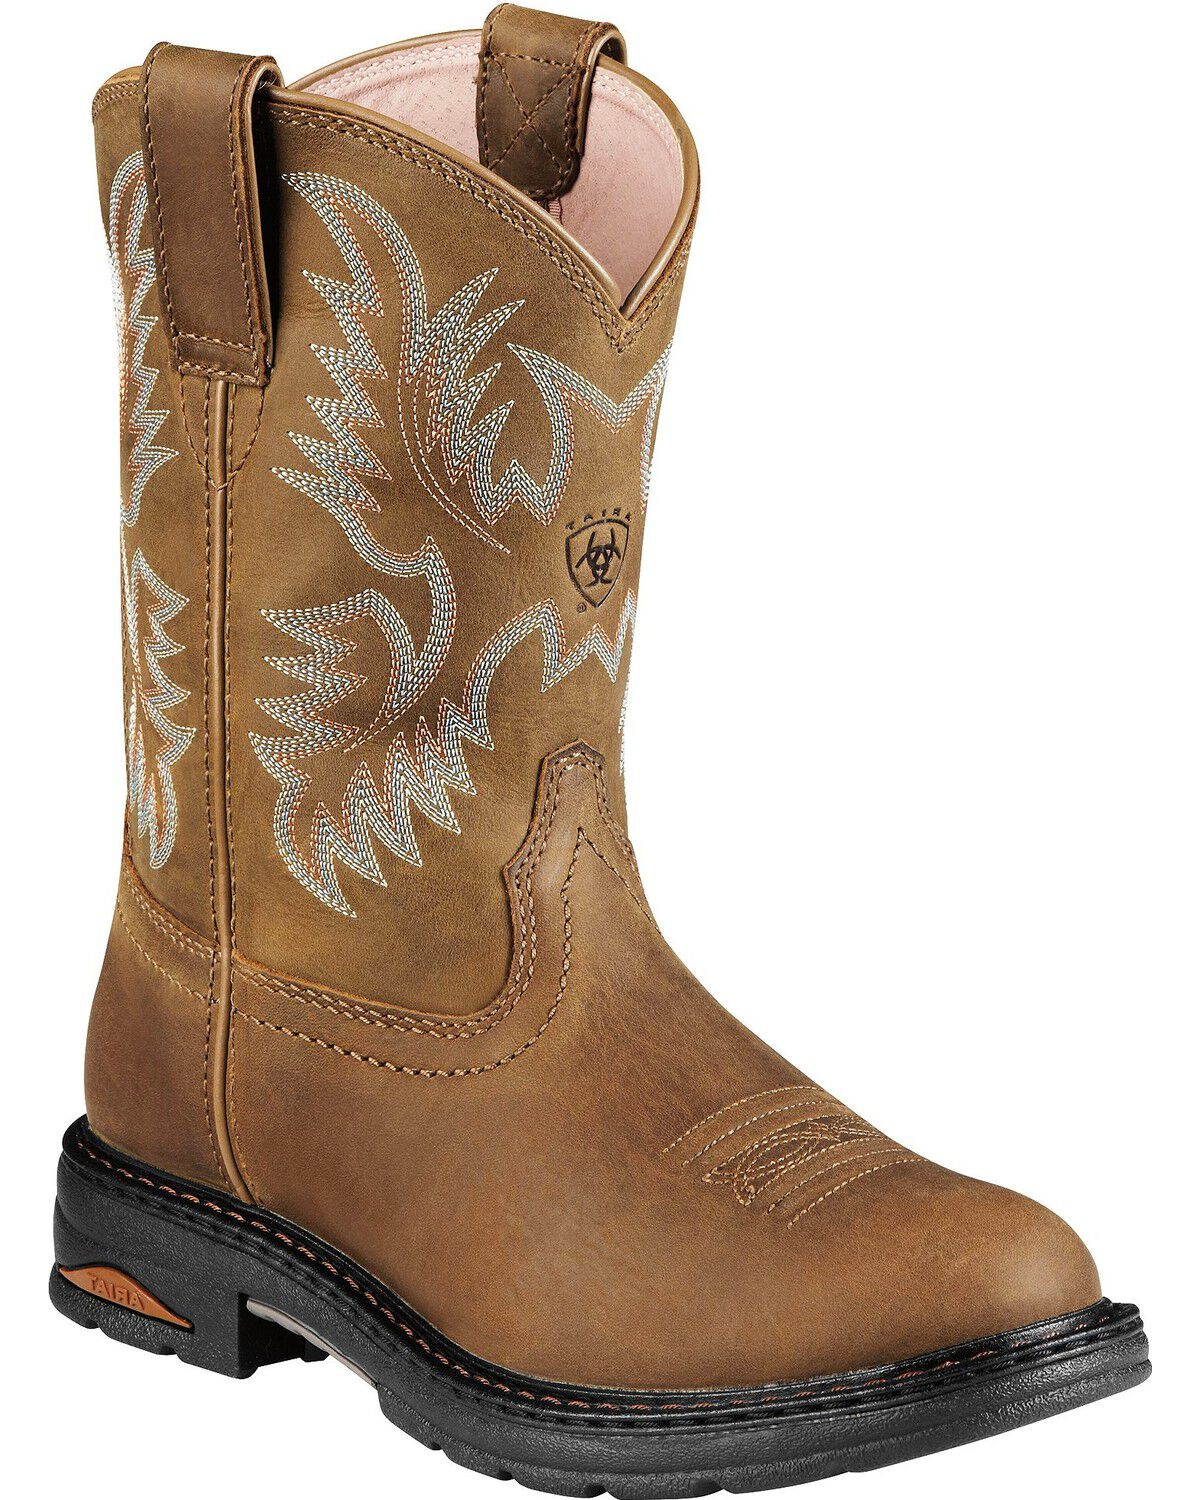 limited quantity new lower prices great variety styles Women's Work Boots - Boot Barn